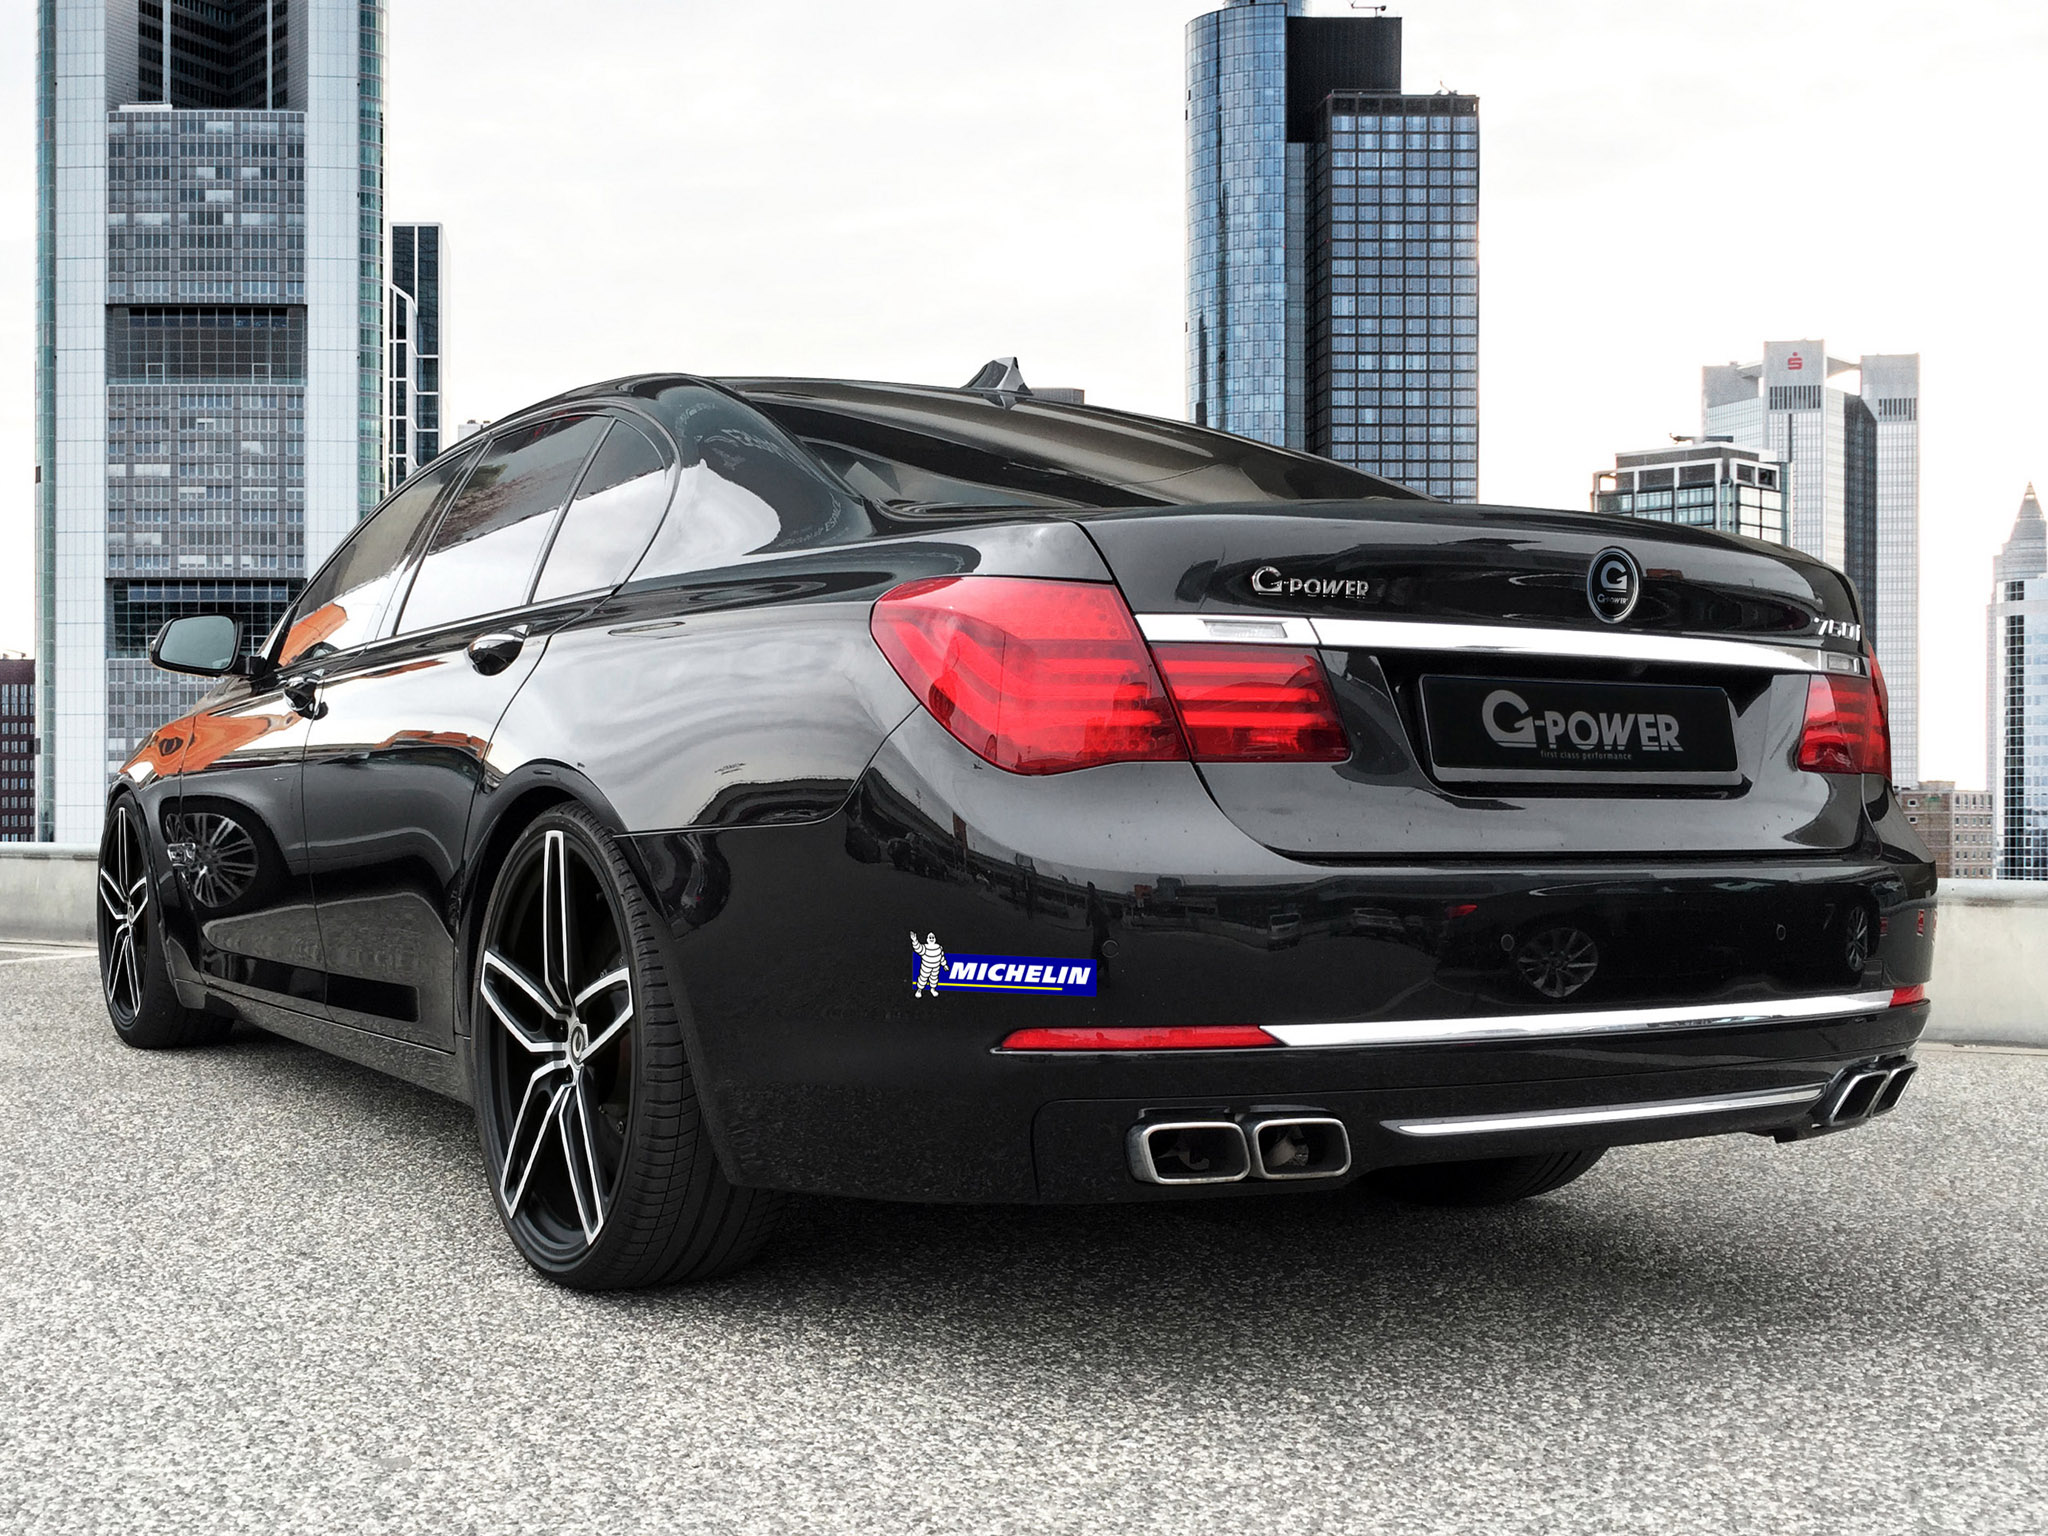 2015 G-power - Bmw 760i F01